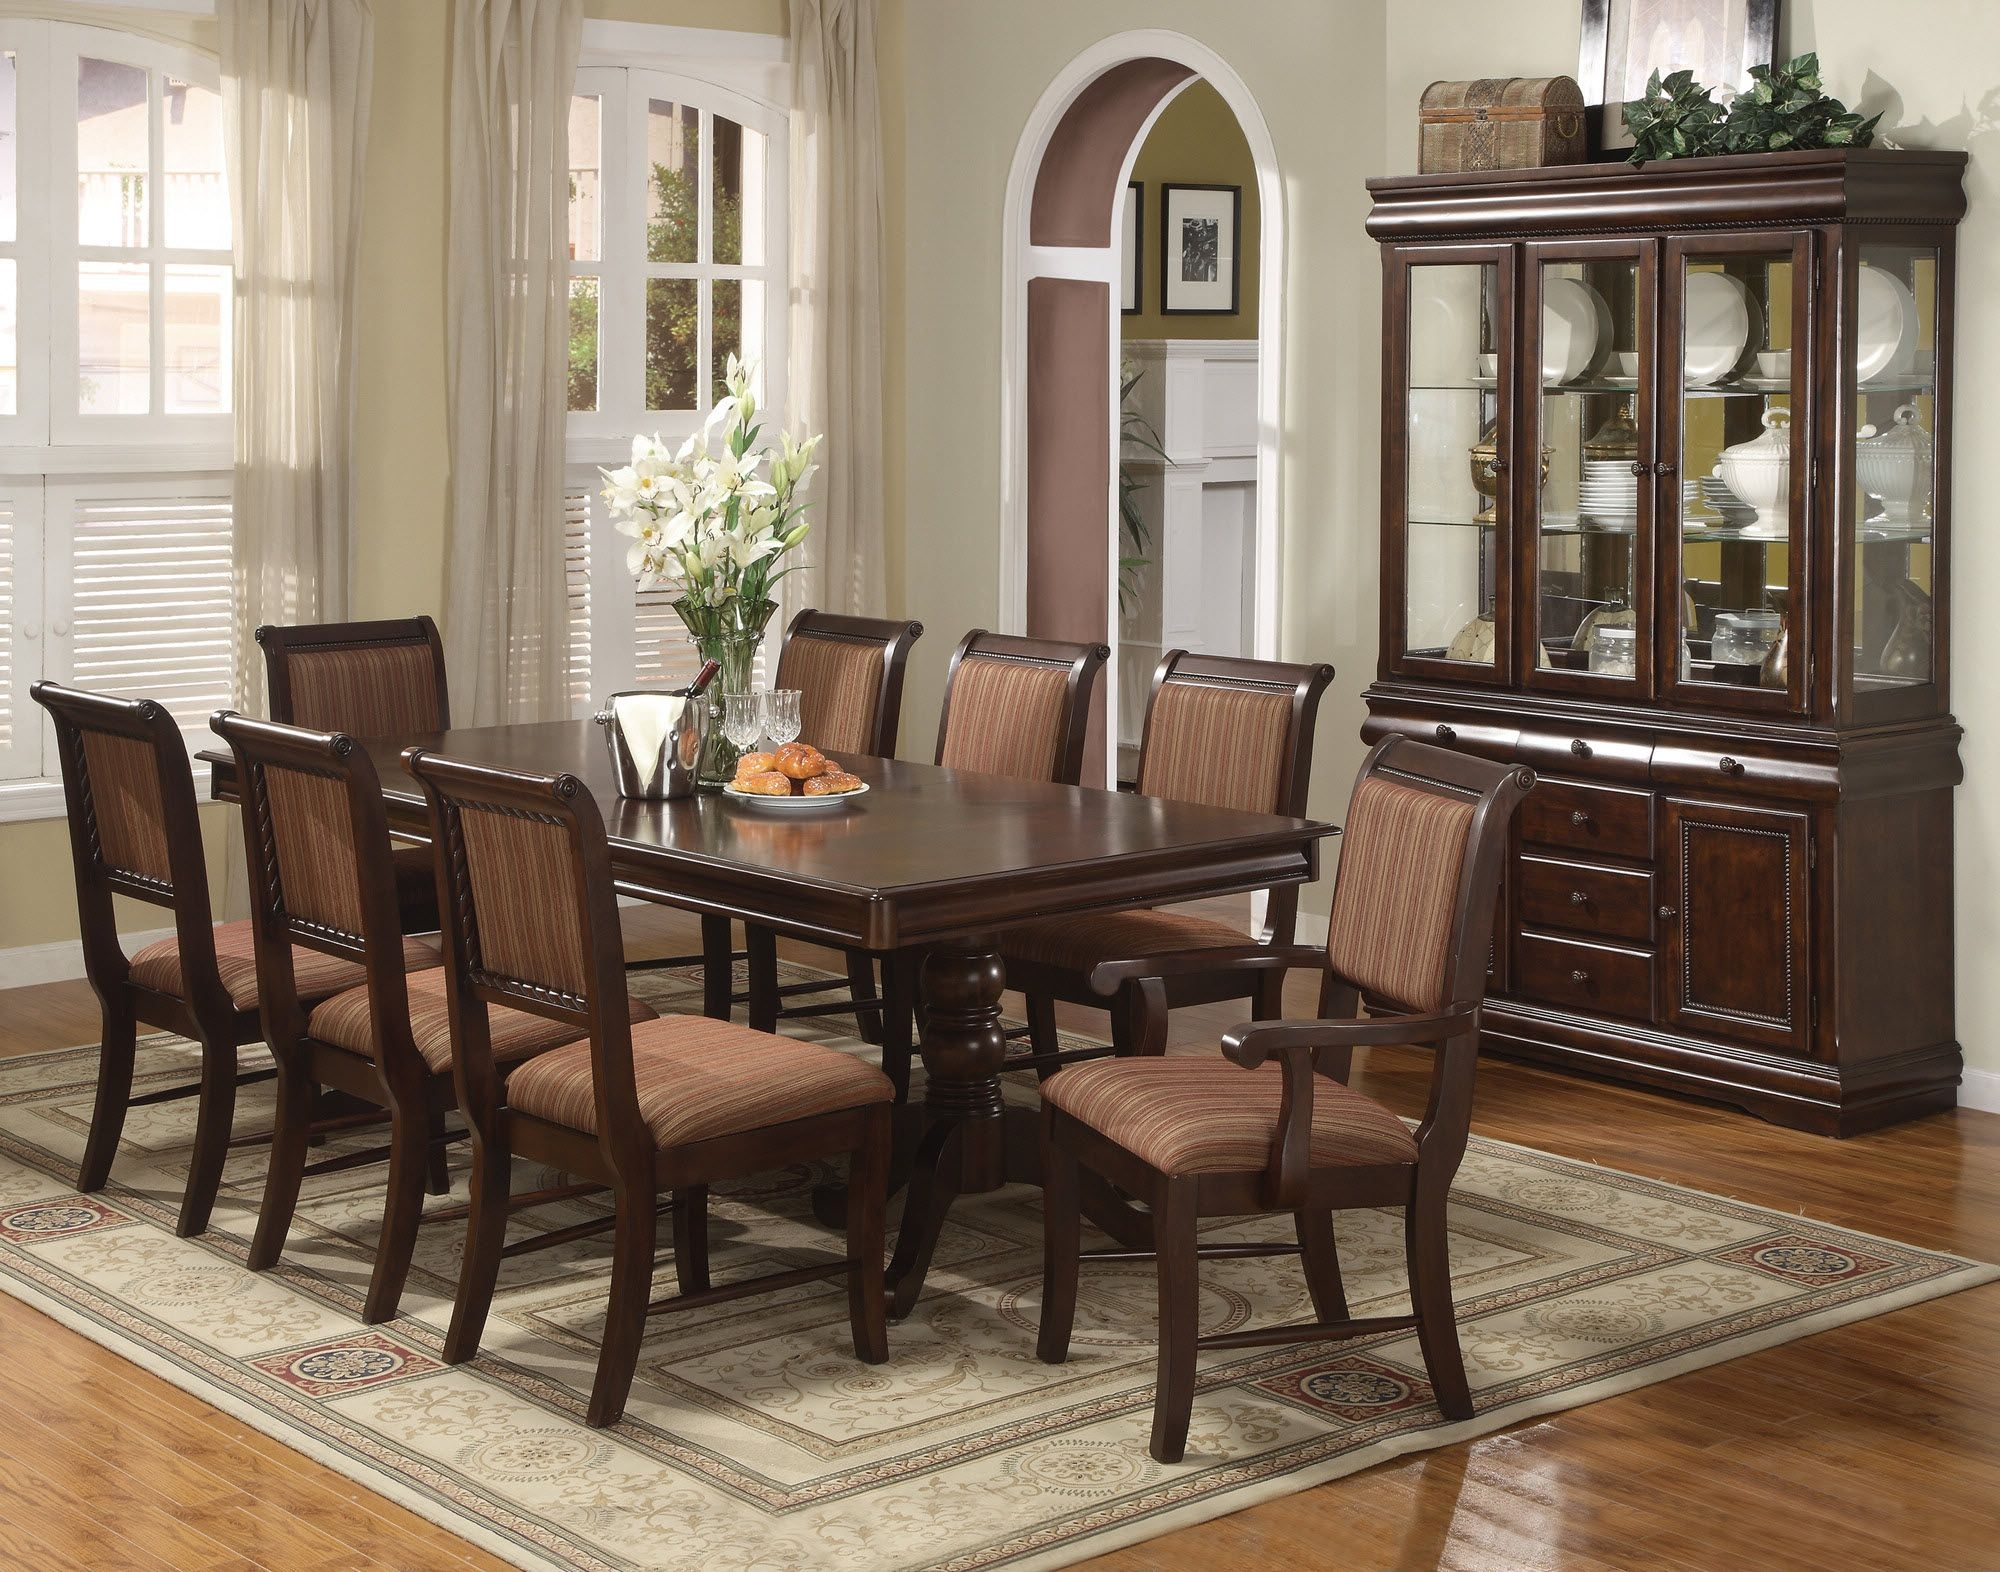 Dining Room Sets With Bench Value City Furniture Kitchen Sets – layjao